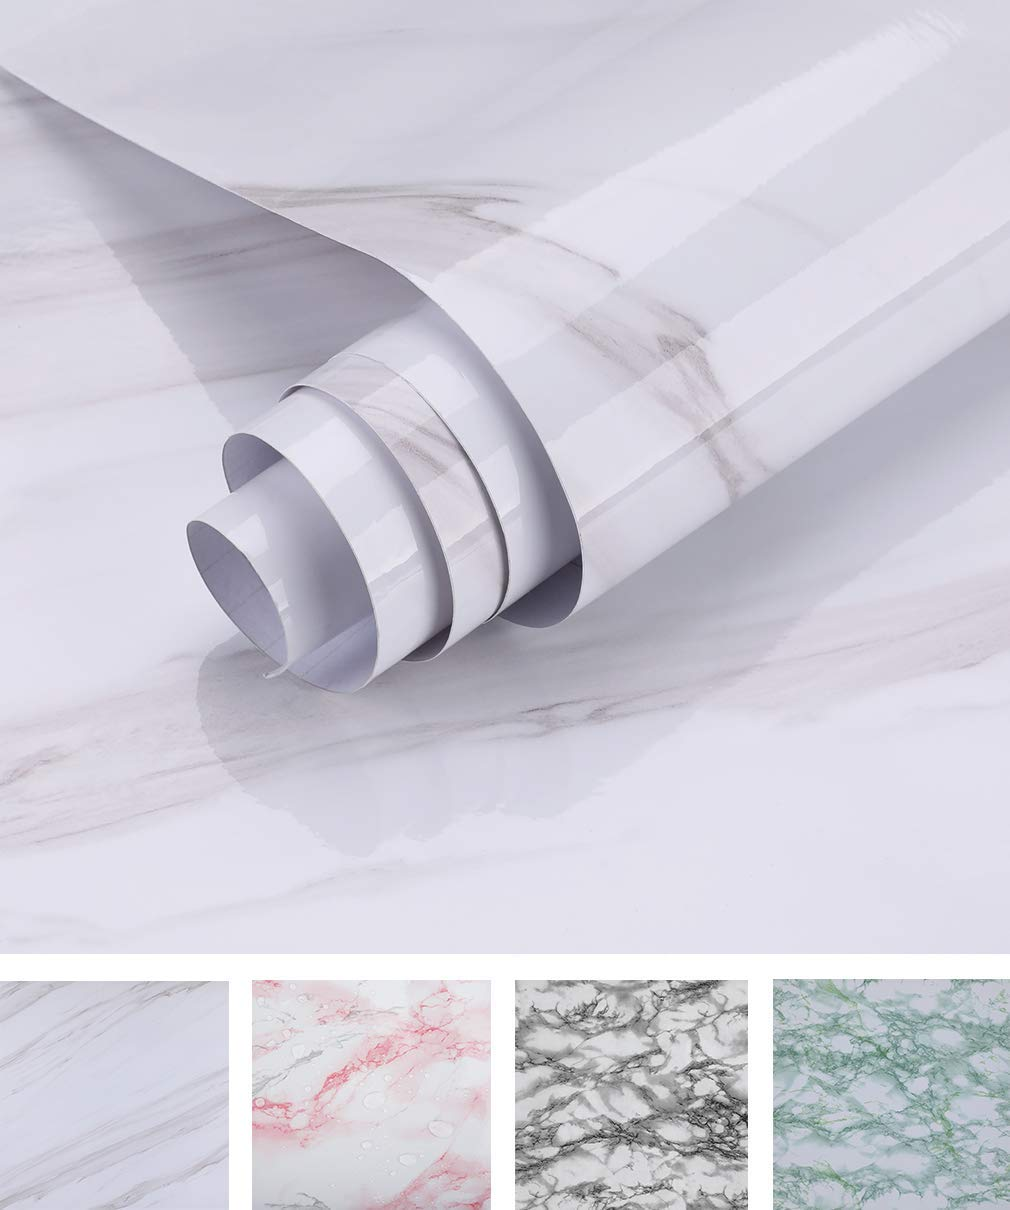 Oxdigi Marble Contact Paper 24 x 196 inches Self Adhesive Peel & Stick Wallpaper for Kitchen Countertop Cabinet Furniture Waterproof PVC Removable White by Oxdigi